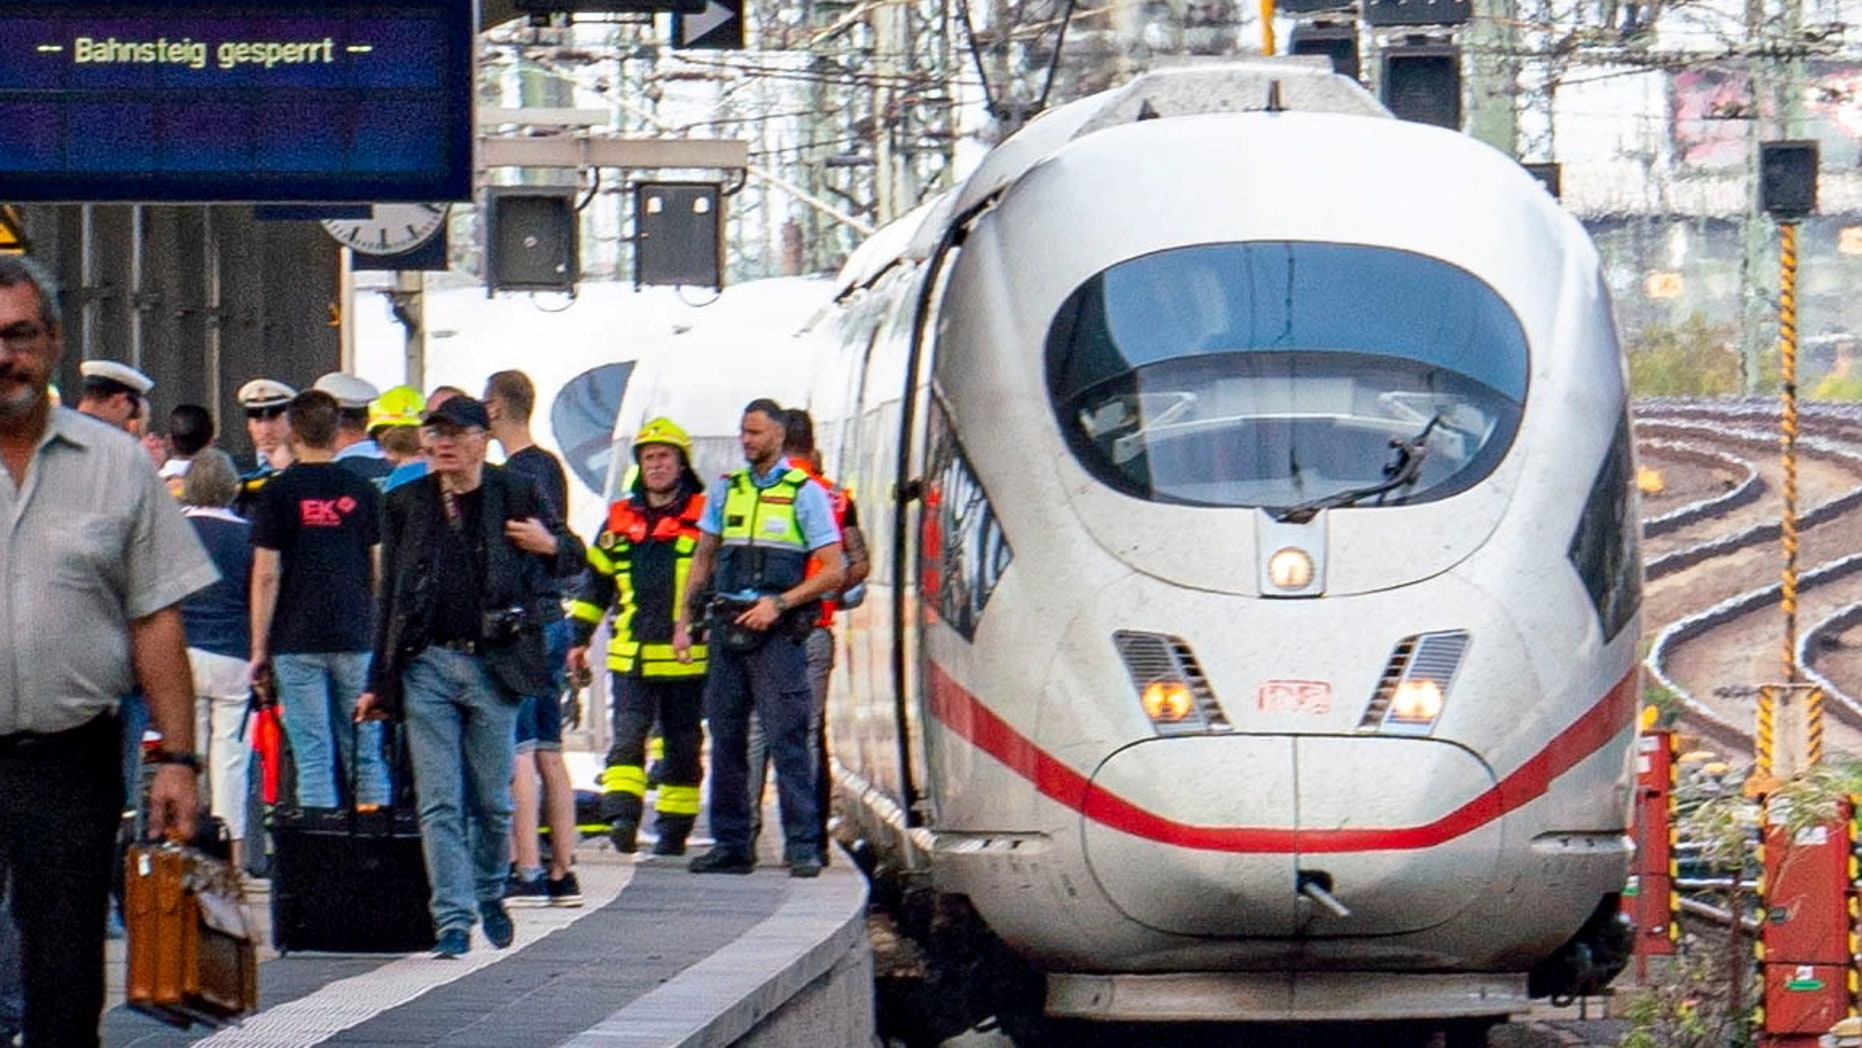 Westlake Legal Group AP19210357460064 Boy, 8, dies after being pushed in front of German train; no motive fox-news/world/world-regions/germany fnc/world fnc Associated Press article 9c2fd3b7-fb65-577a-9fd8-5c8fb2ba087f